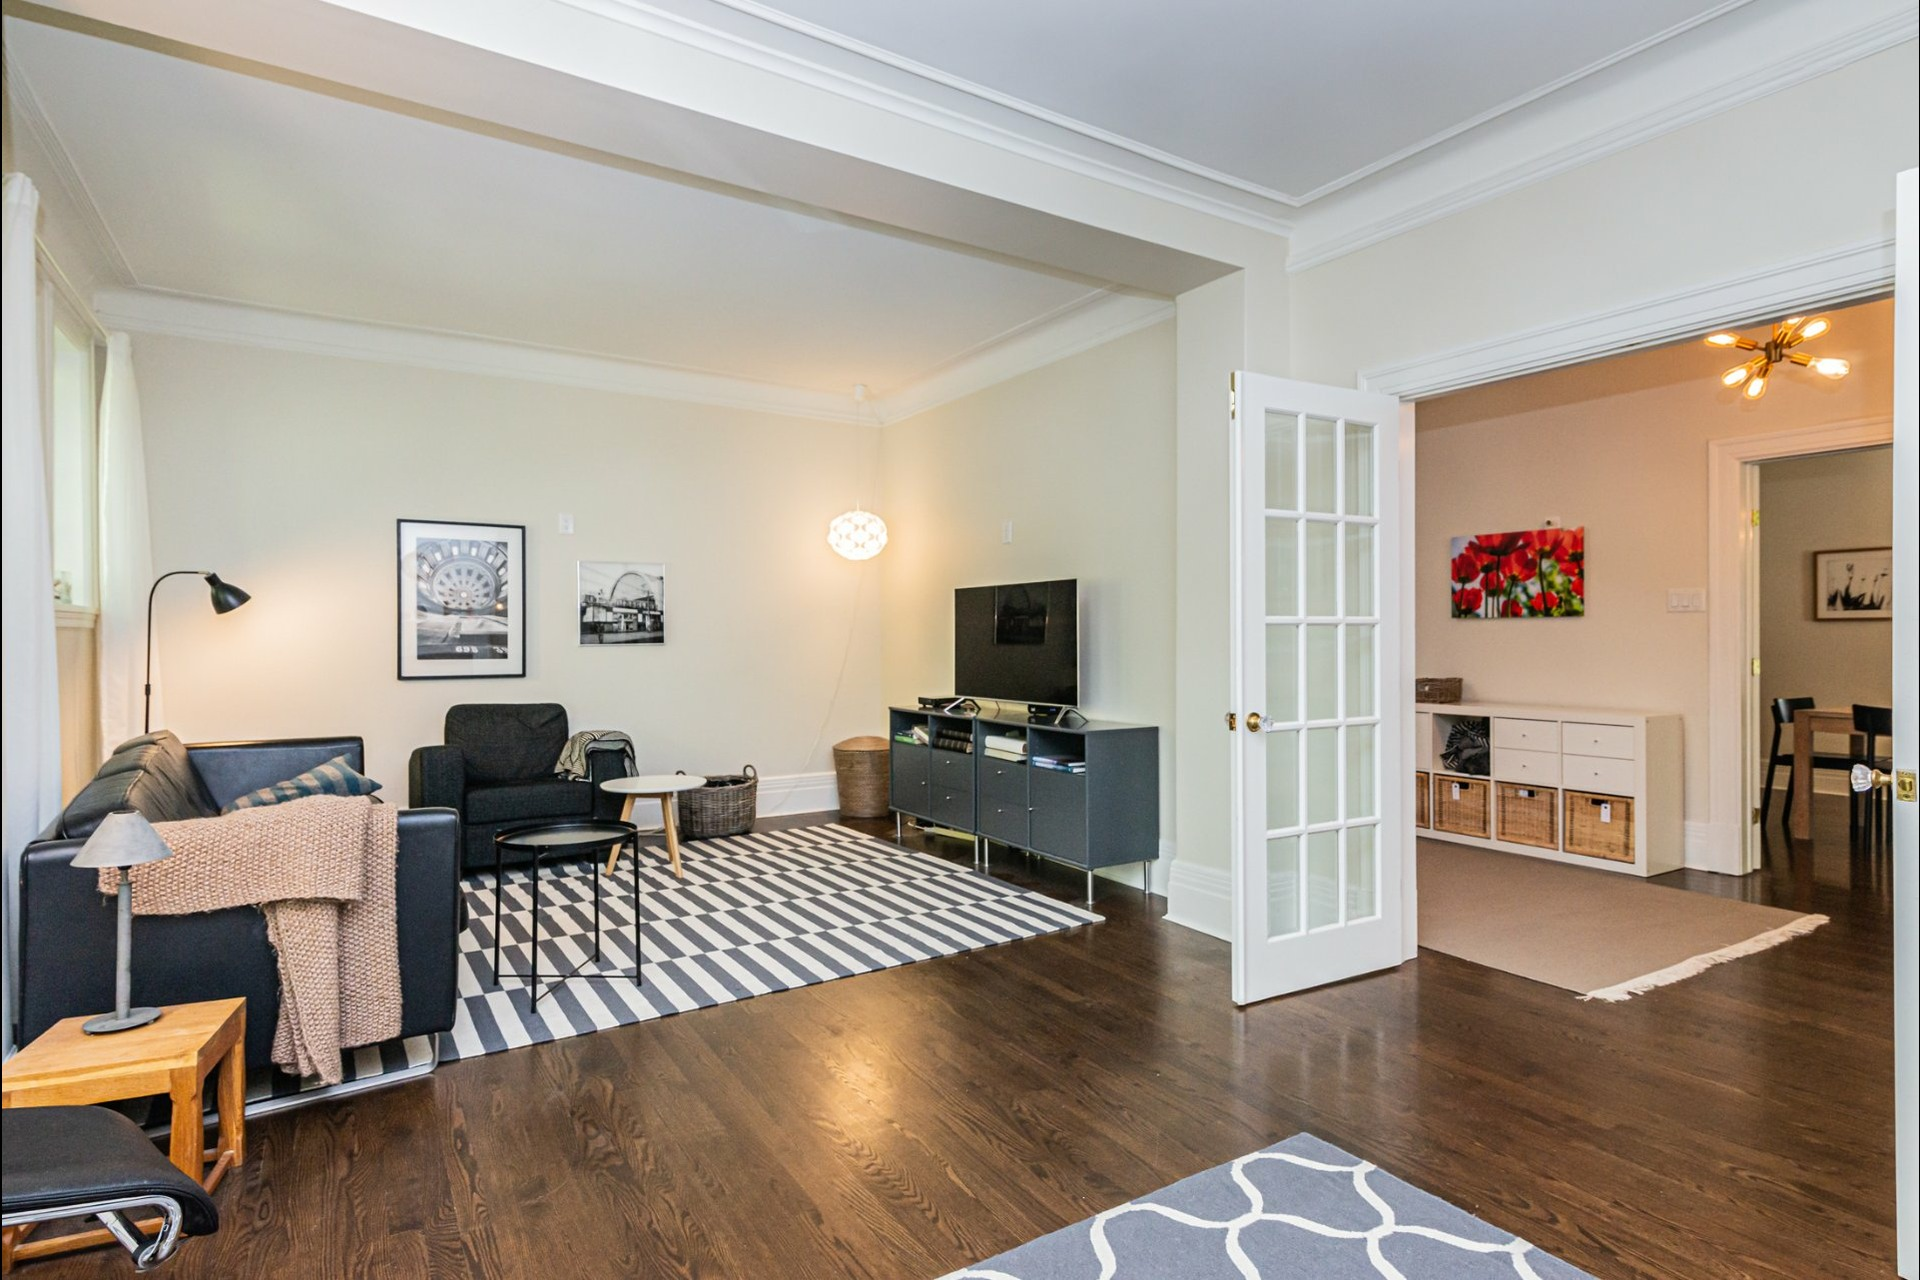 image 9 - House For rent Westmount - 8 rooms